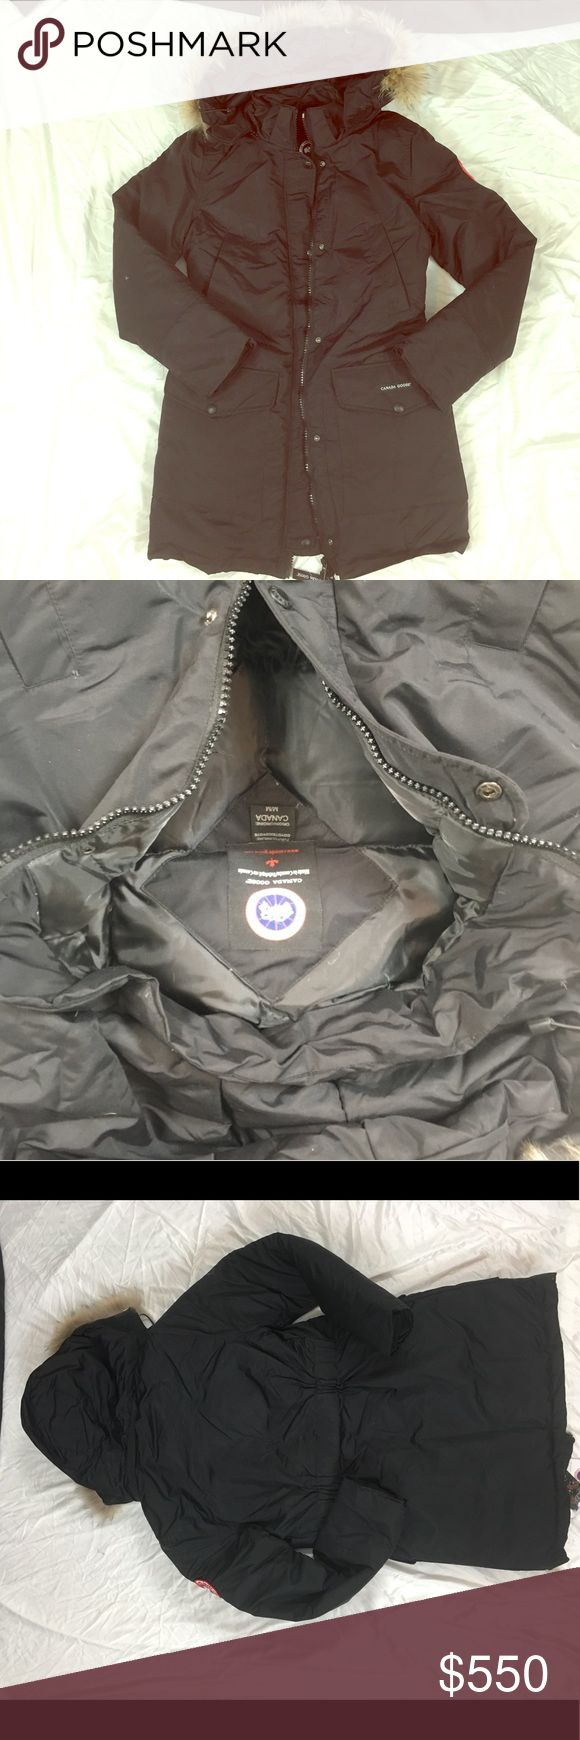 Canada Goose Women's Trillium Jacket New Canada goose trillium jacket. Coyote fur hood and goose down fill for extreme warmth. Offers welcome. Canada Goose Jackets & Coats